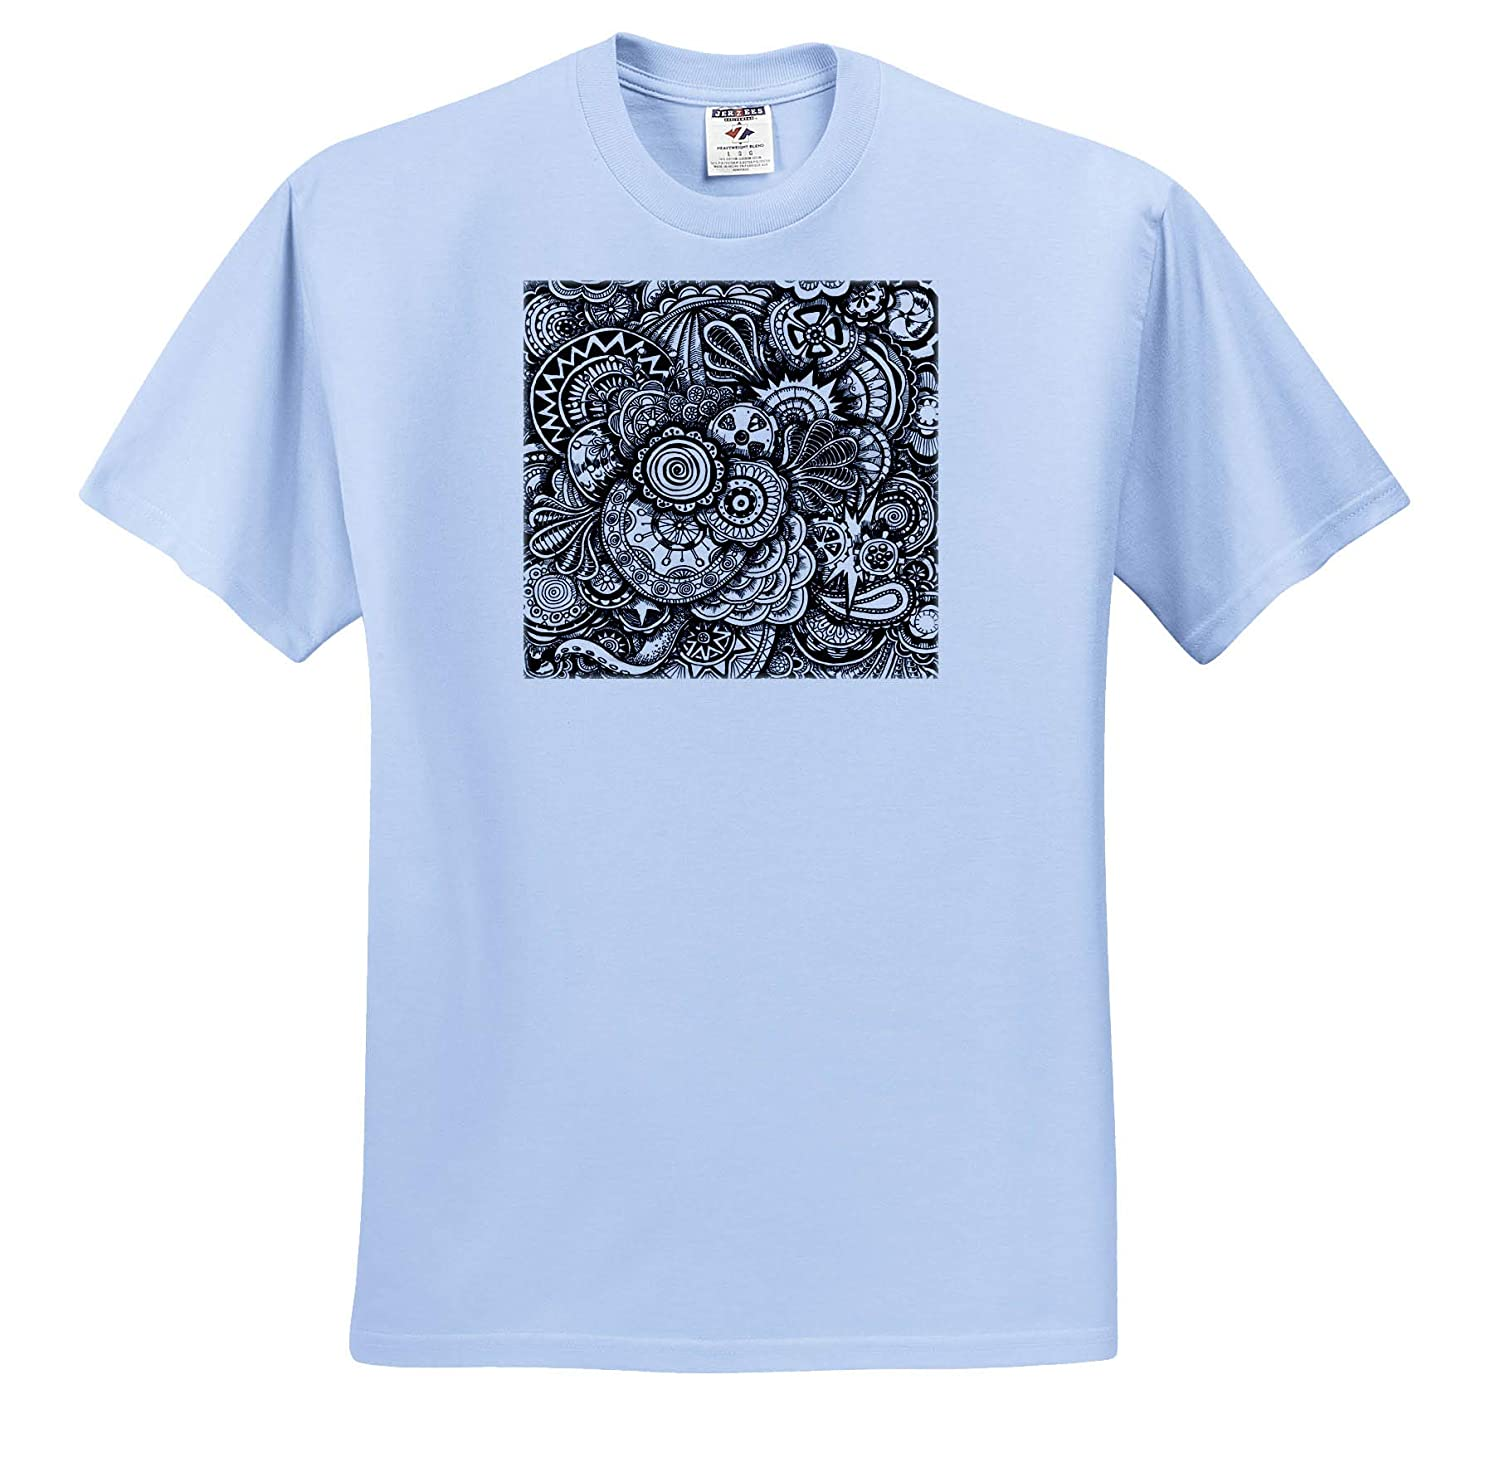 Adult T-Shirt XL Zentangle Style Art Art ts/_317501 3dRose Travis ECK